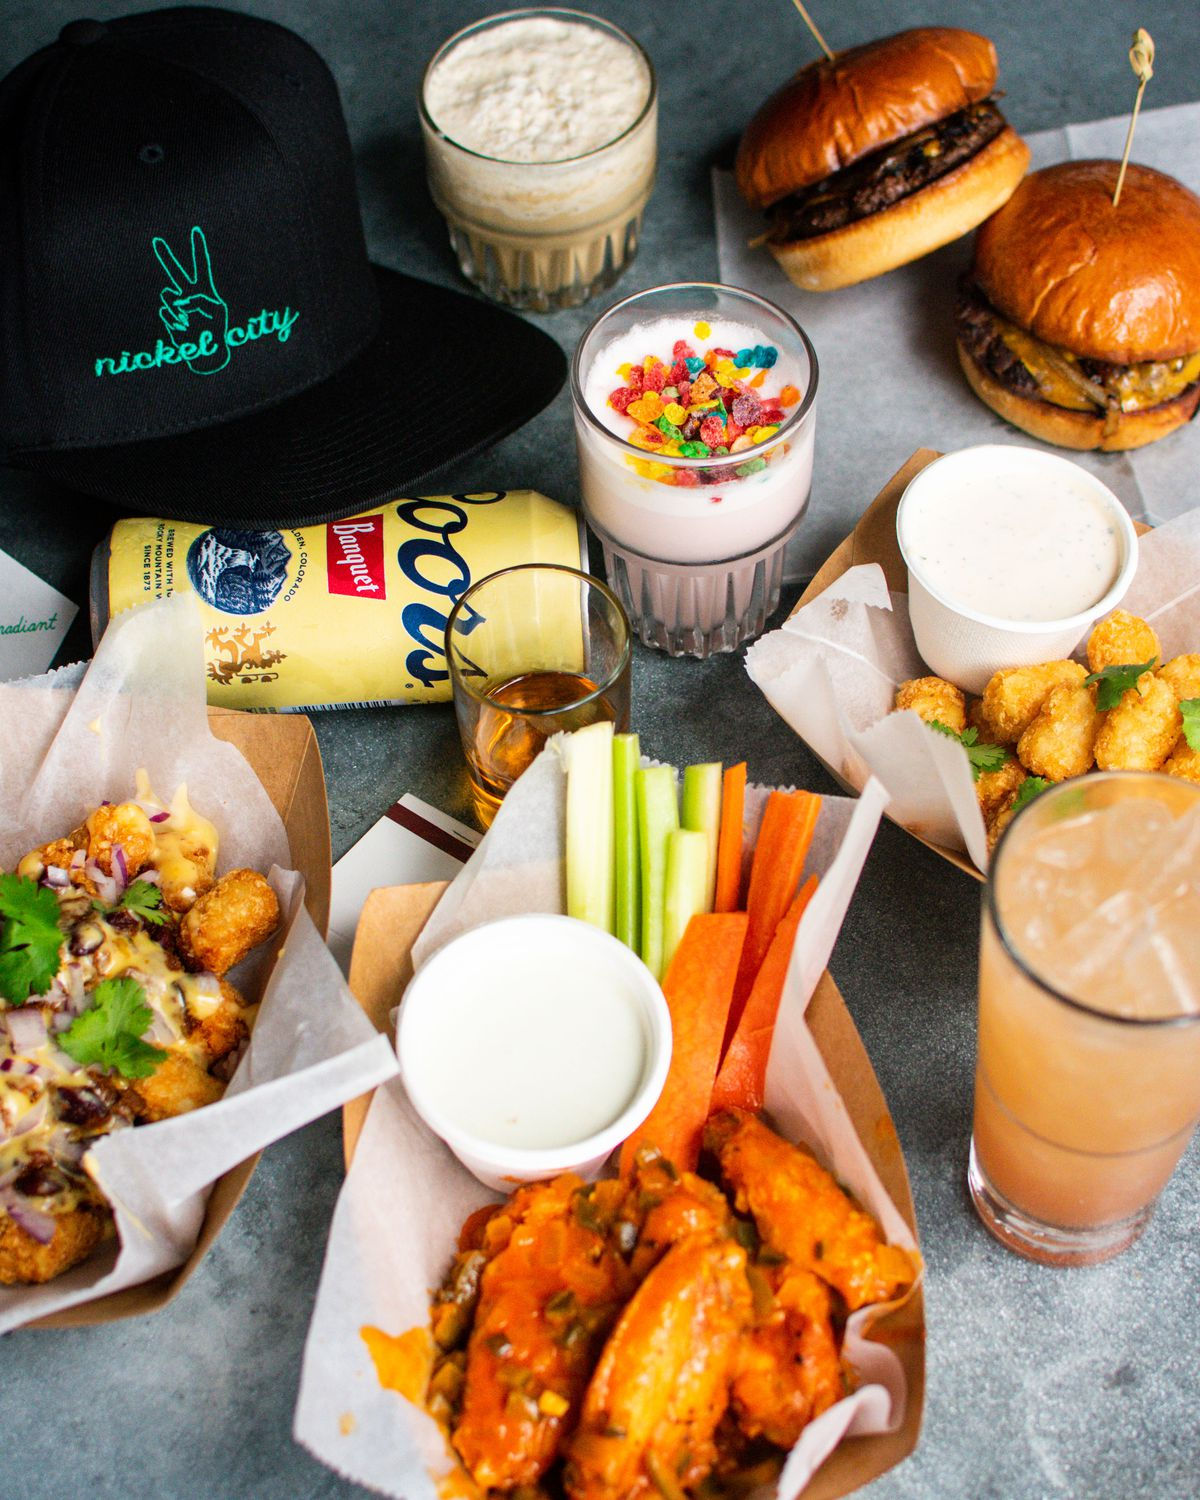 The hat, food, and drinks from Nickel City's pop-up at Irene's